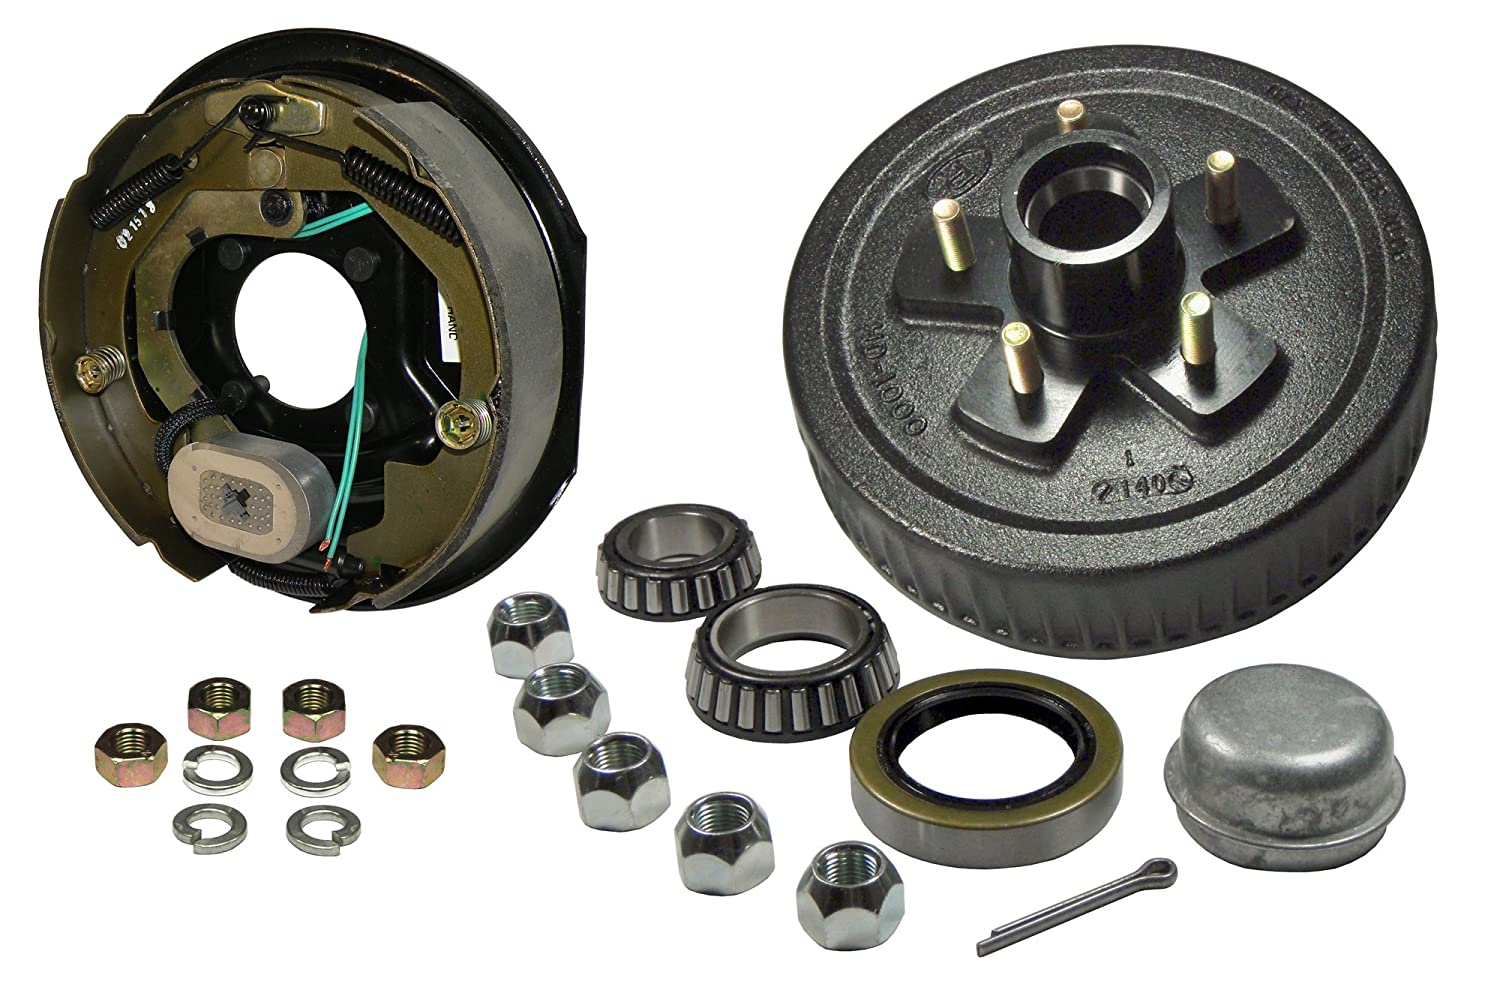 5-Bolt on 4-1/2 Inch Bolt Circle - 10 Inch Hub/Drum With Electric Brake Assembly - Drivers Side Rigid Hitch